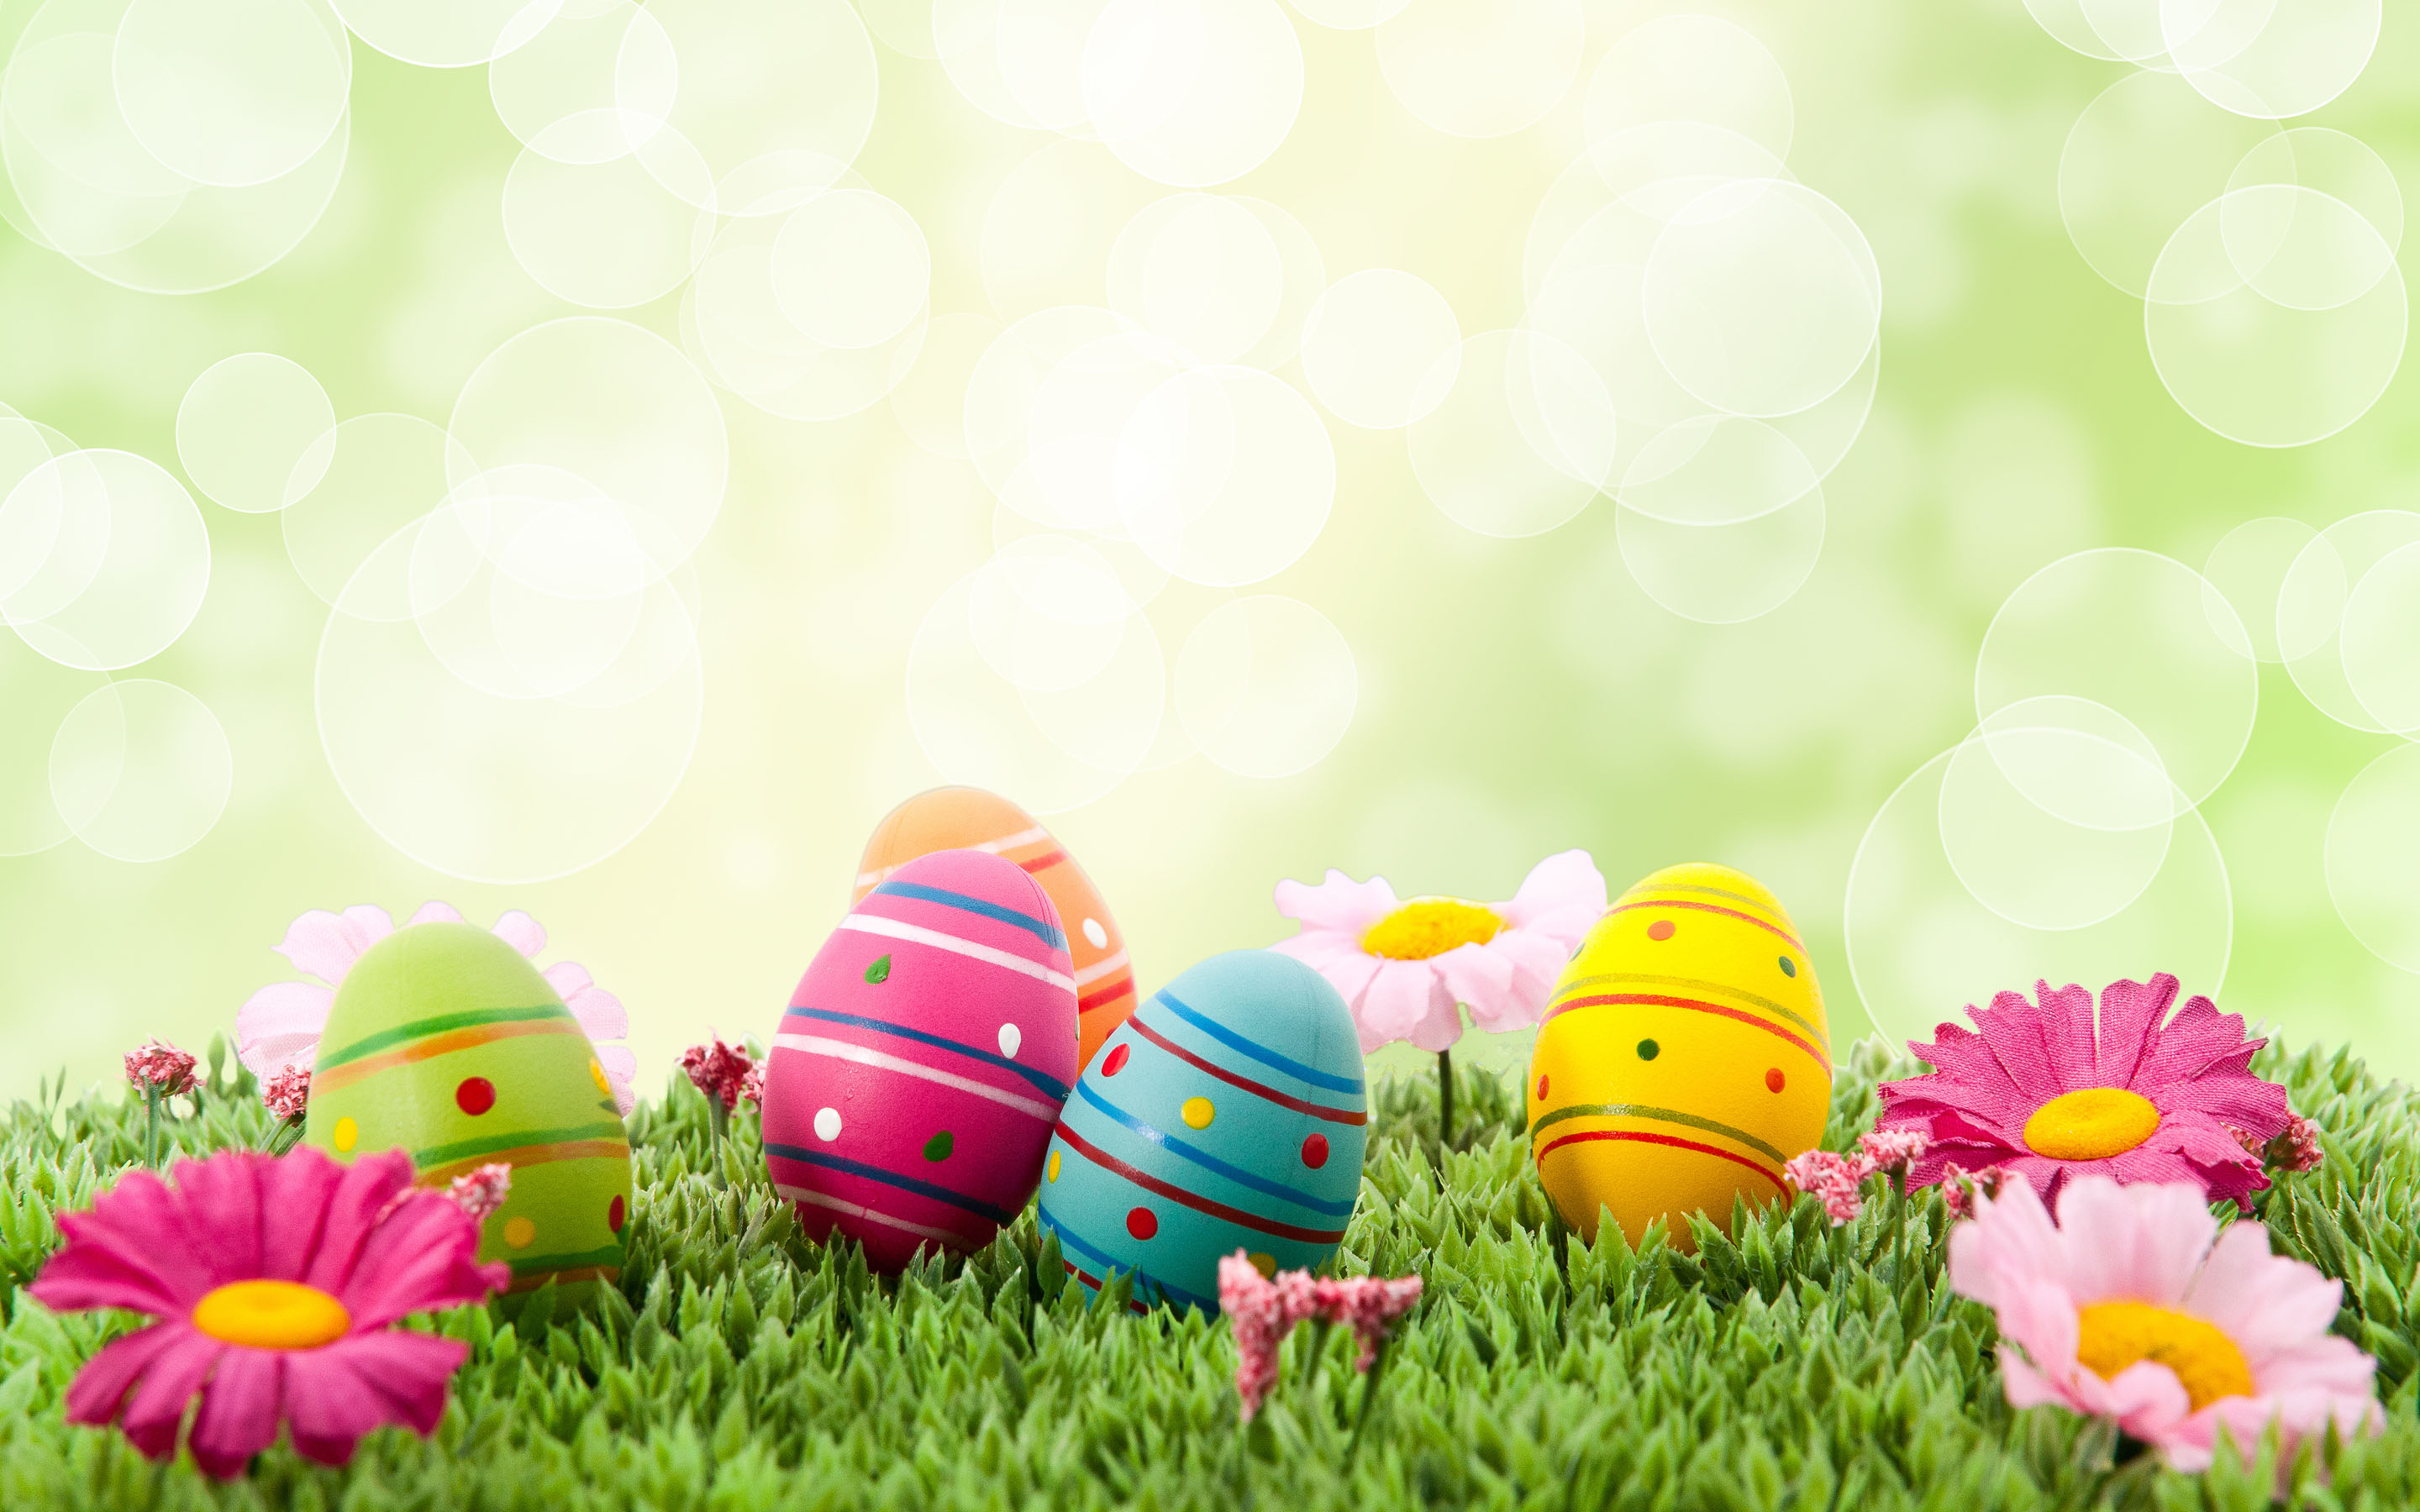 easter wallpapers easter backgrounds event images easter wallpaperjpg 2880x1800